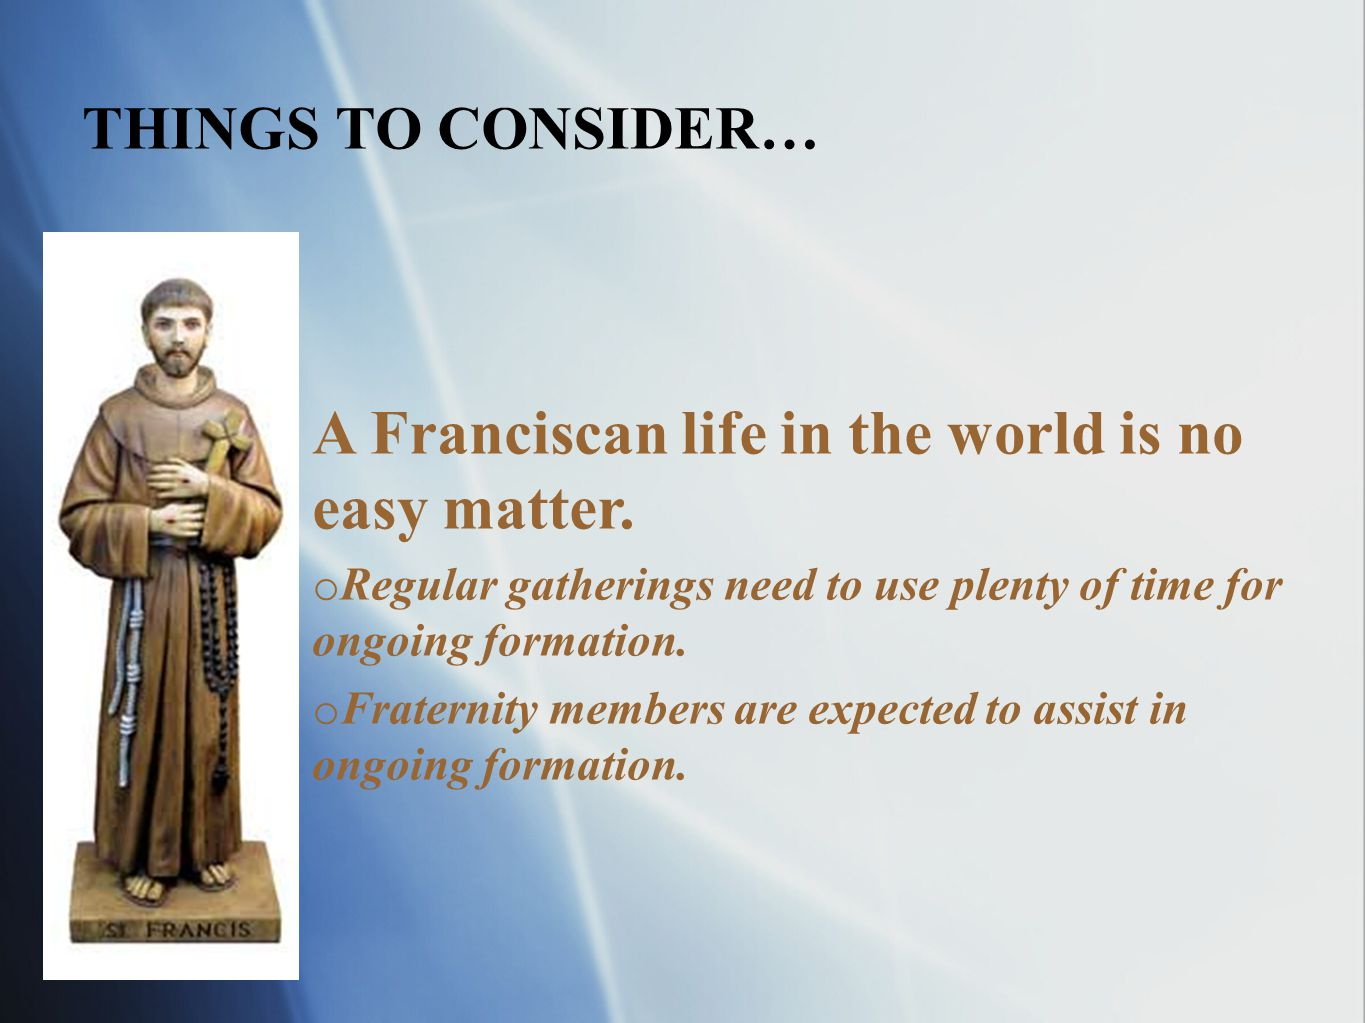 THINGS TO CONSIDER… A Franciscan life in the world is no easy matter.